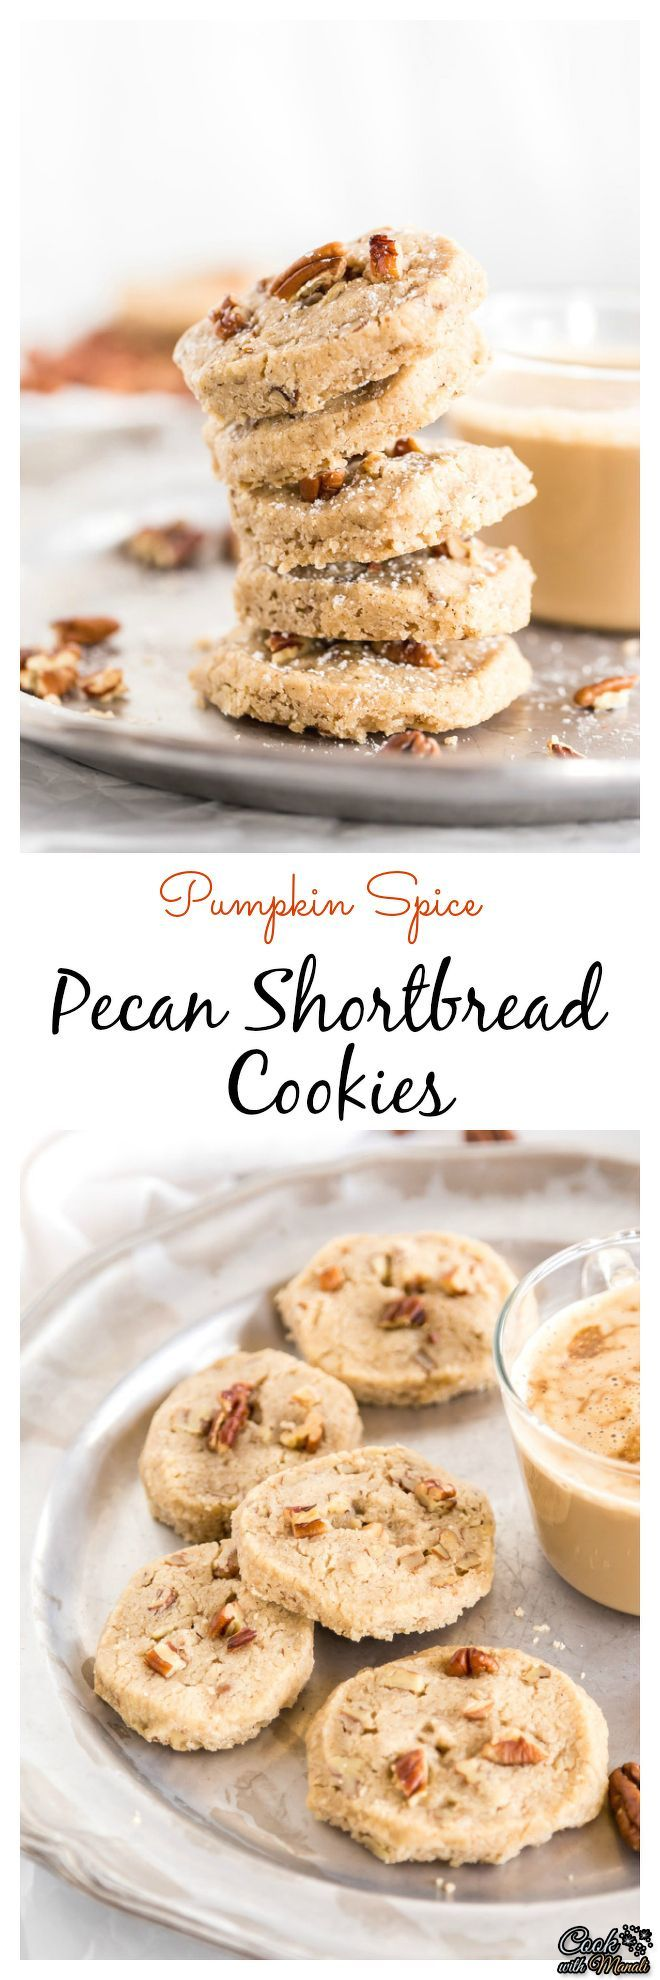 Buttery and perfect for fall, these Pumpkin Spice Pecan Shortbread Cookies can be enjoyed as such or with Pumpkin Spice Latte! #fall #cookies #pumpkin